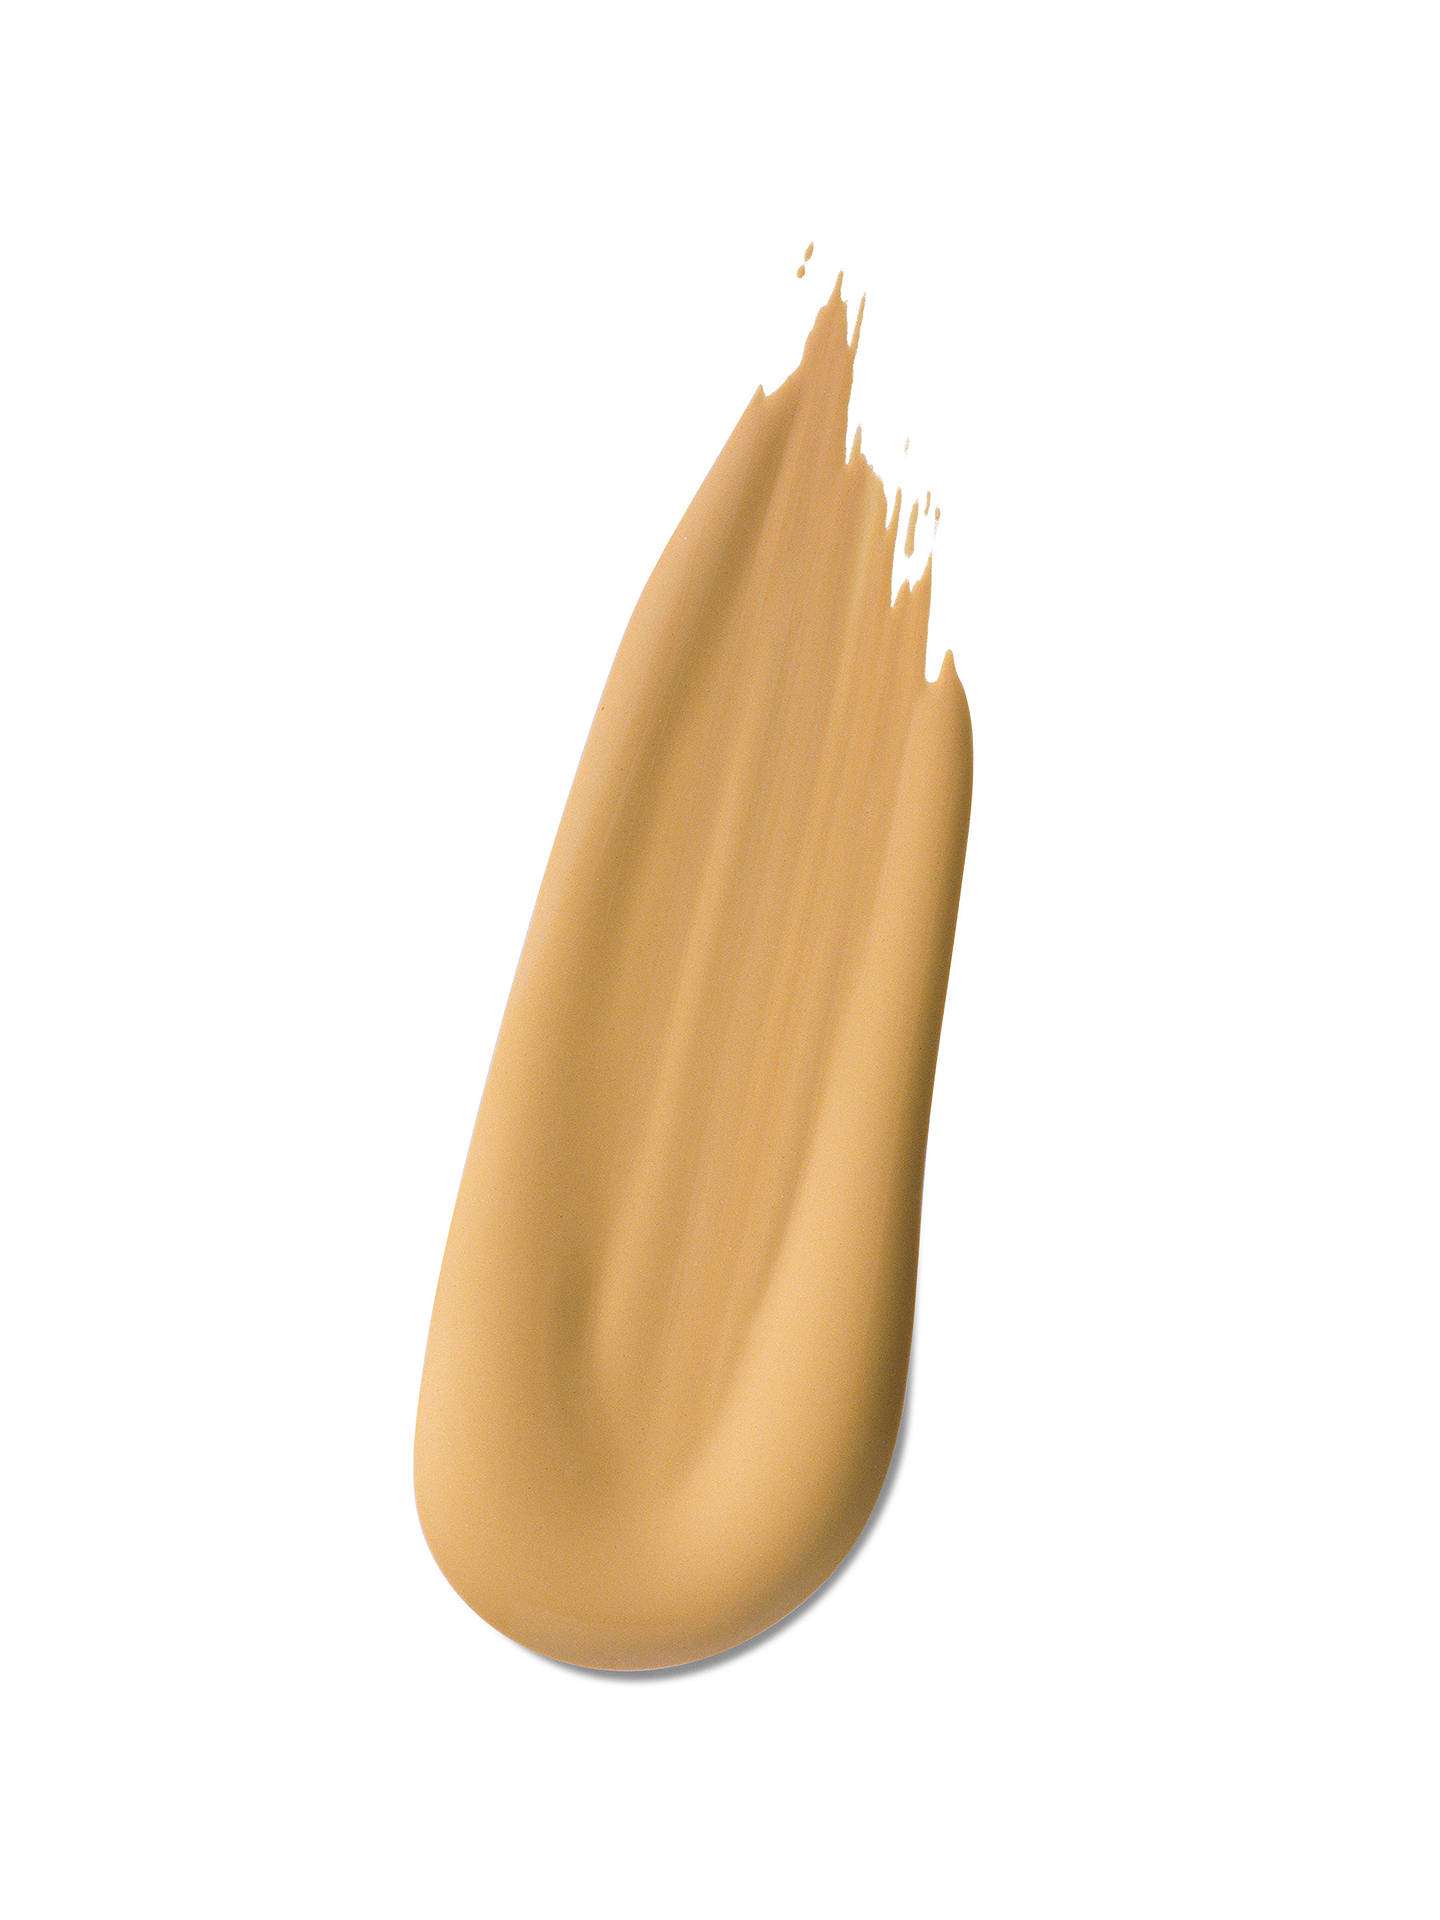 Buy Estée Lauder Double Wear Stay-In-Place Foundation Makeup SPF10, 2W1.5 Natural Suede Online at johnlewis.com